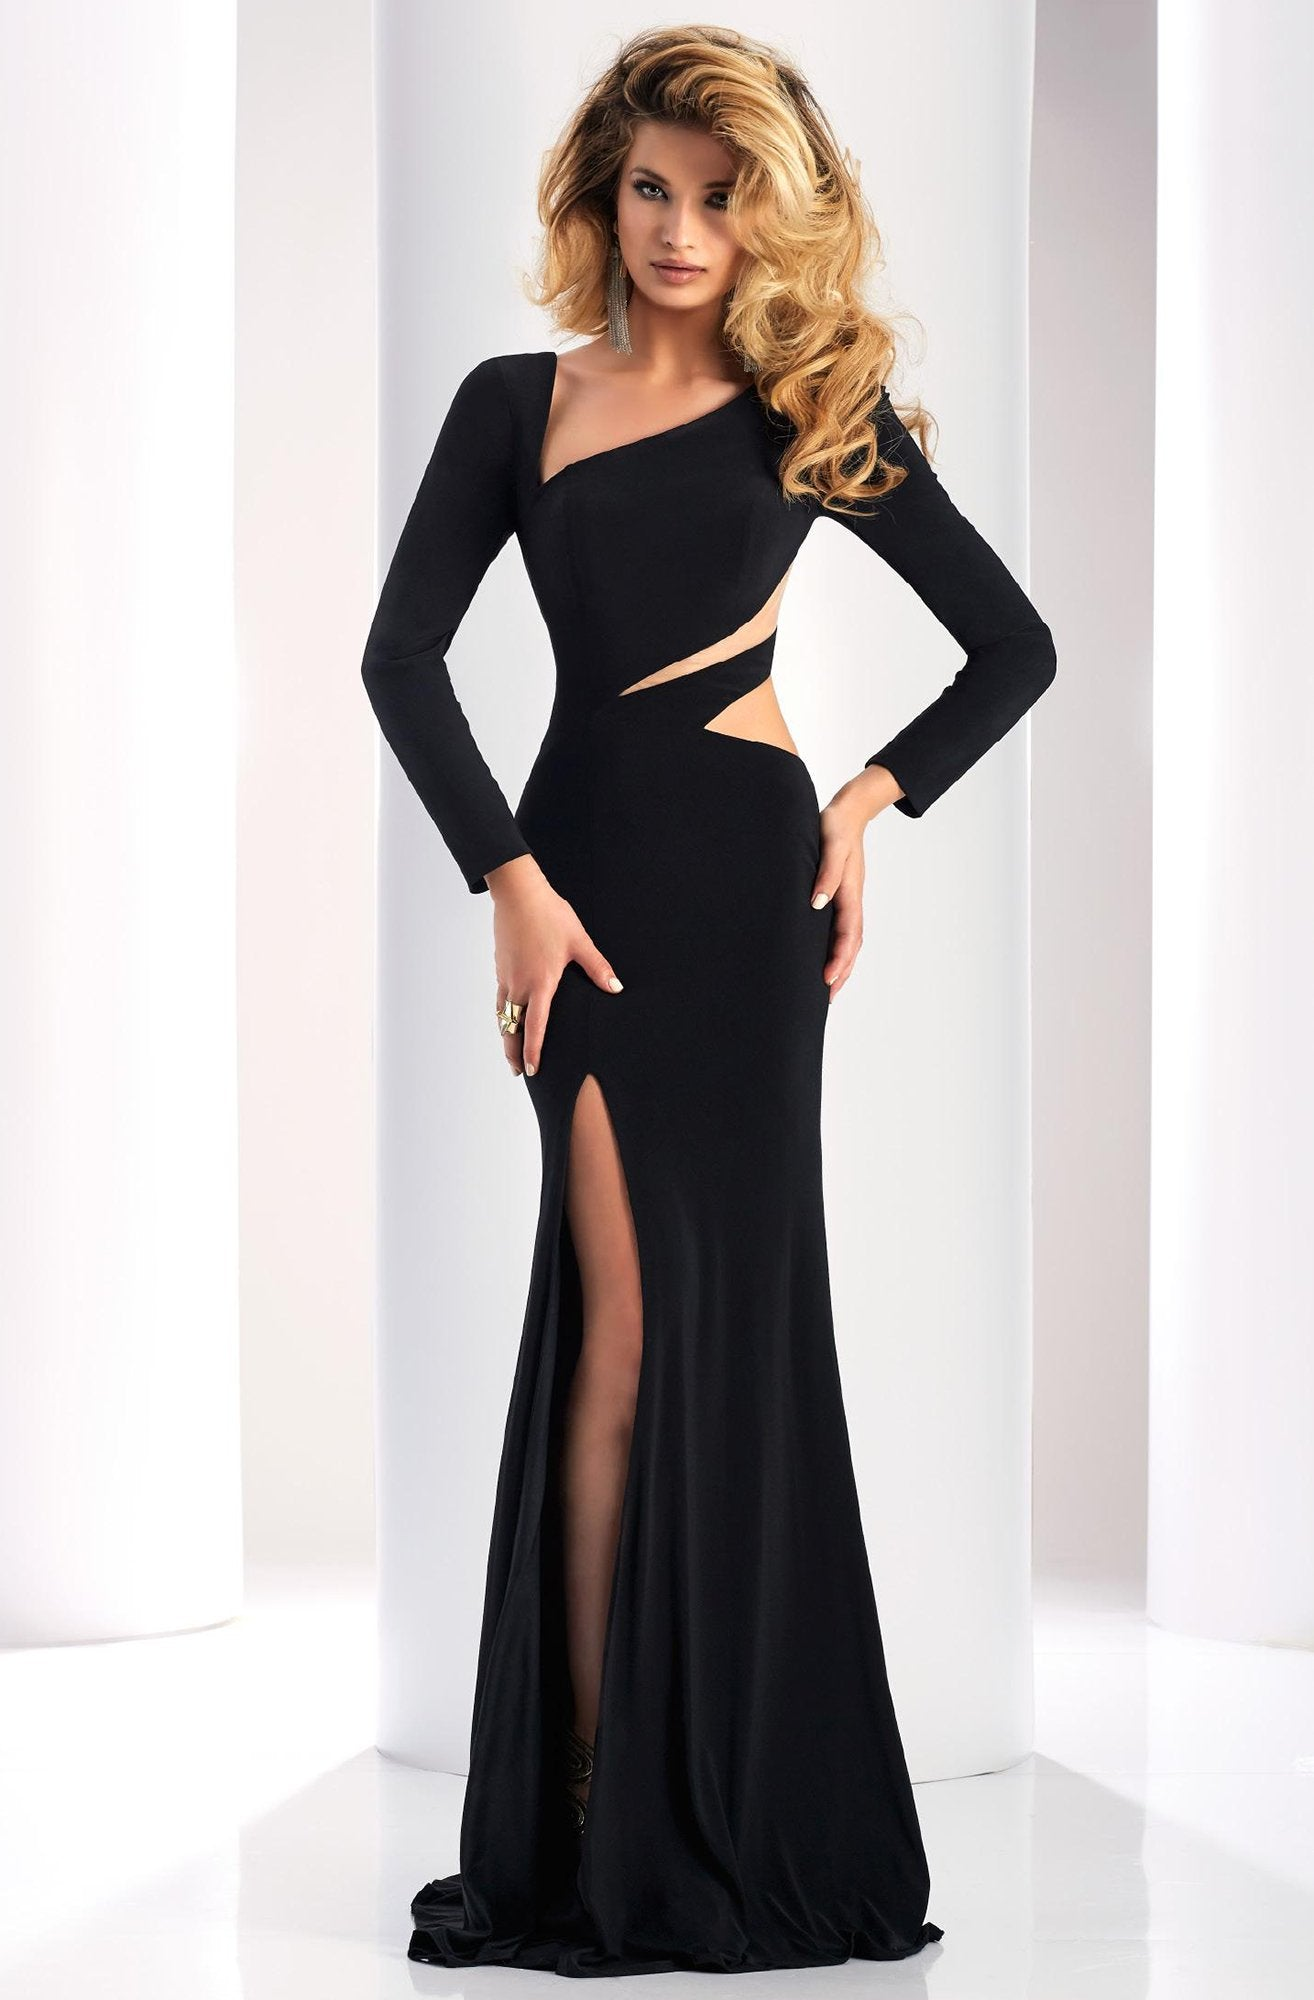 Clarisse - 4859 Long Sleeve Cutout Sheath Gown in Black